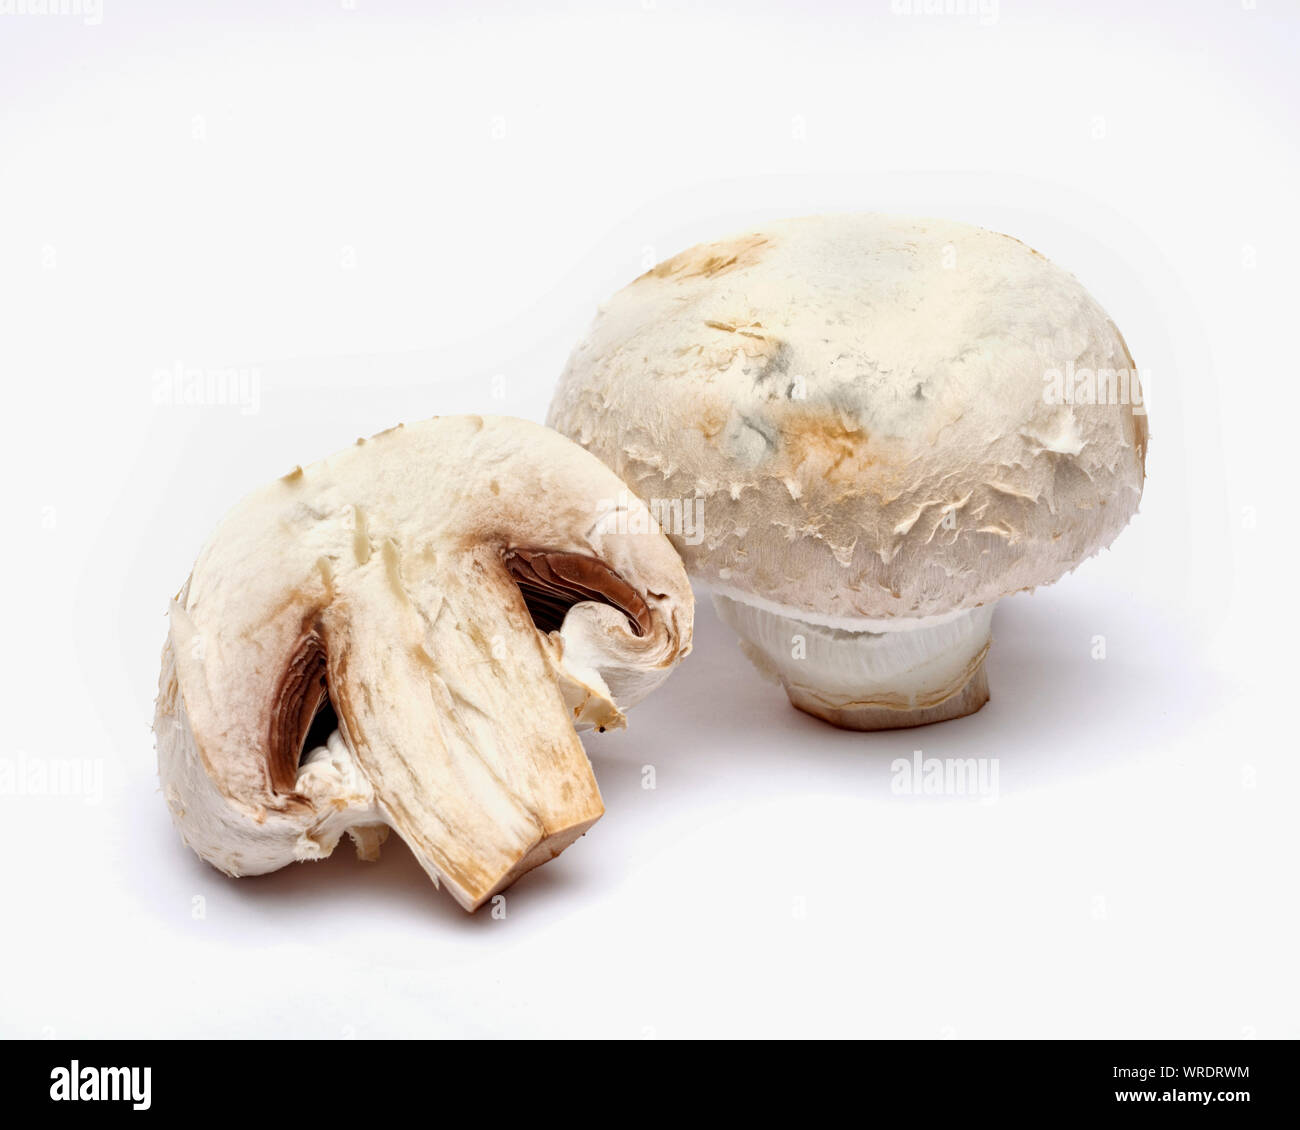 Button Mushrooms, whole and sliced in half on a white background Stock Photo